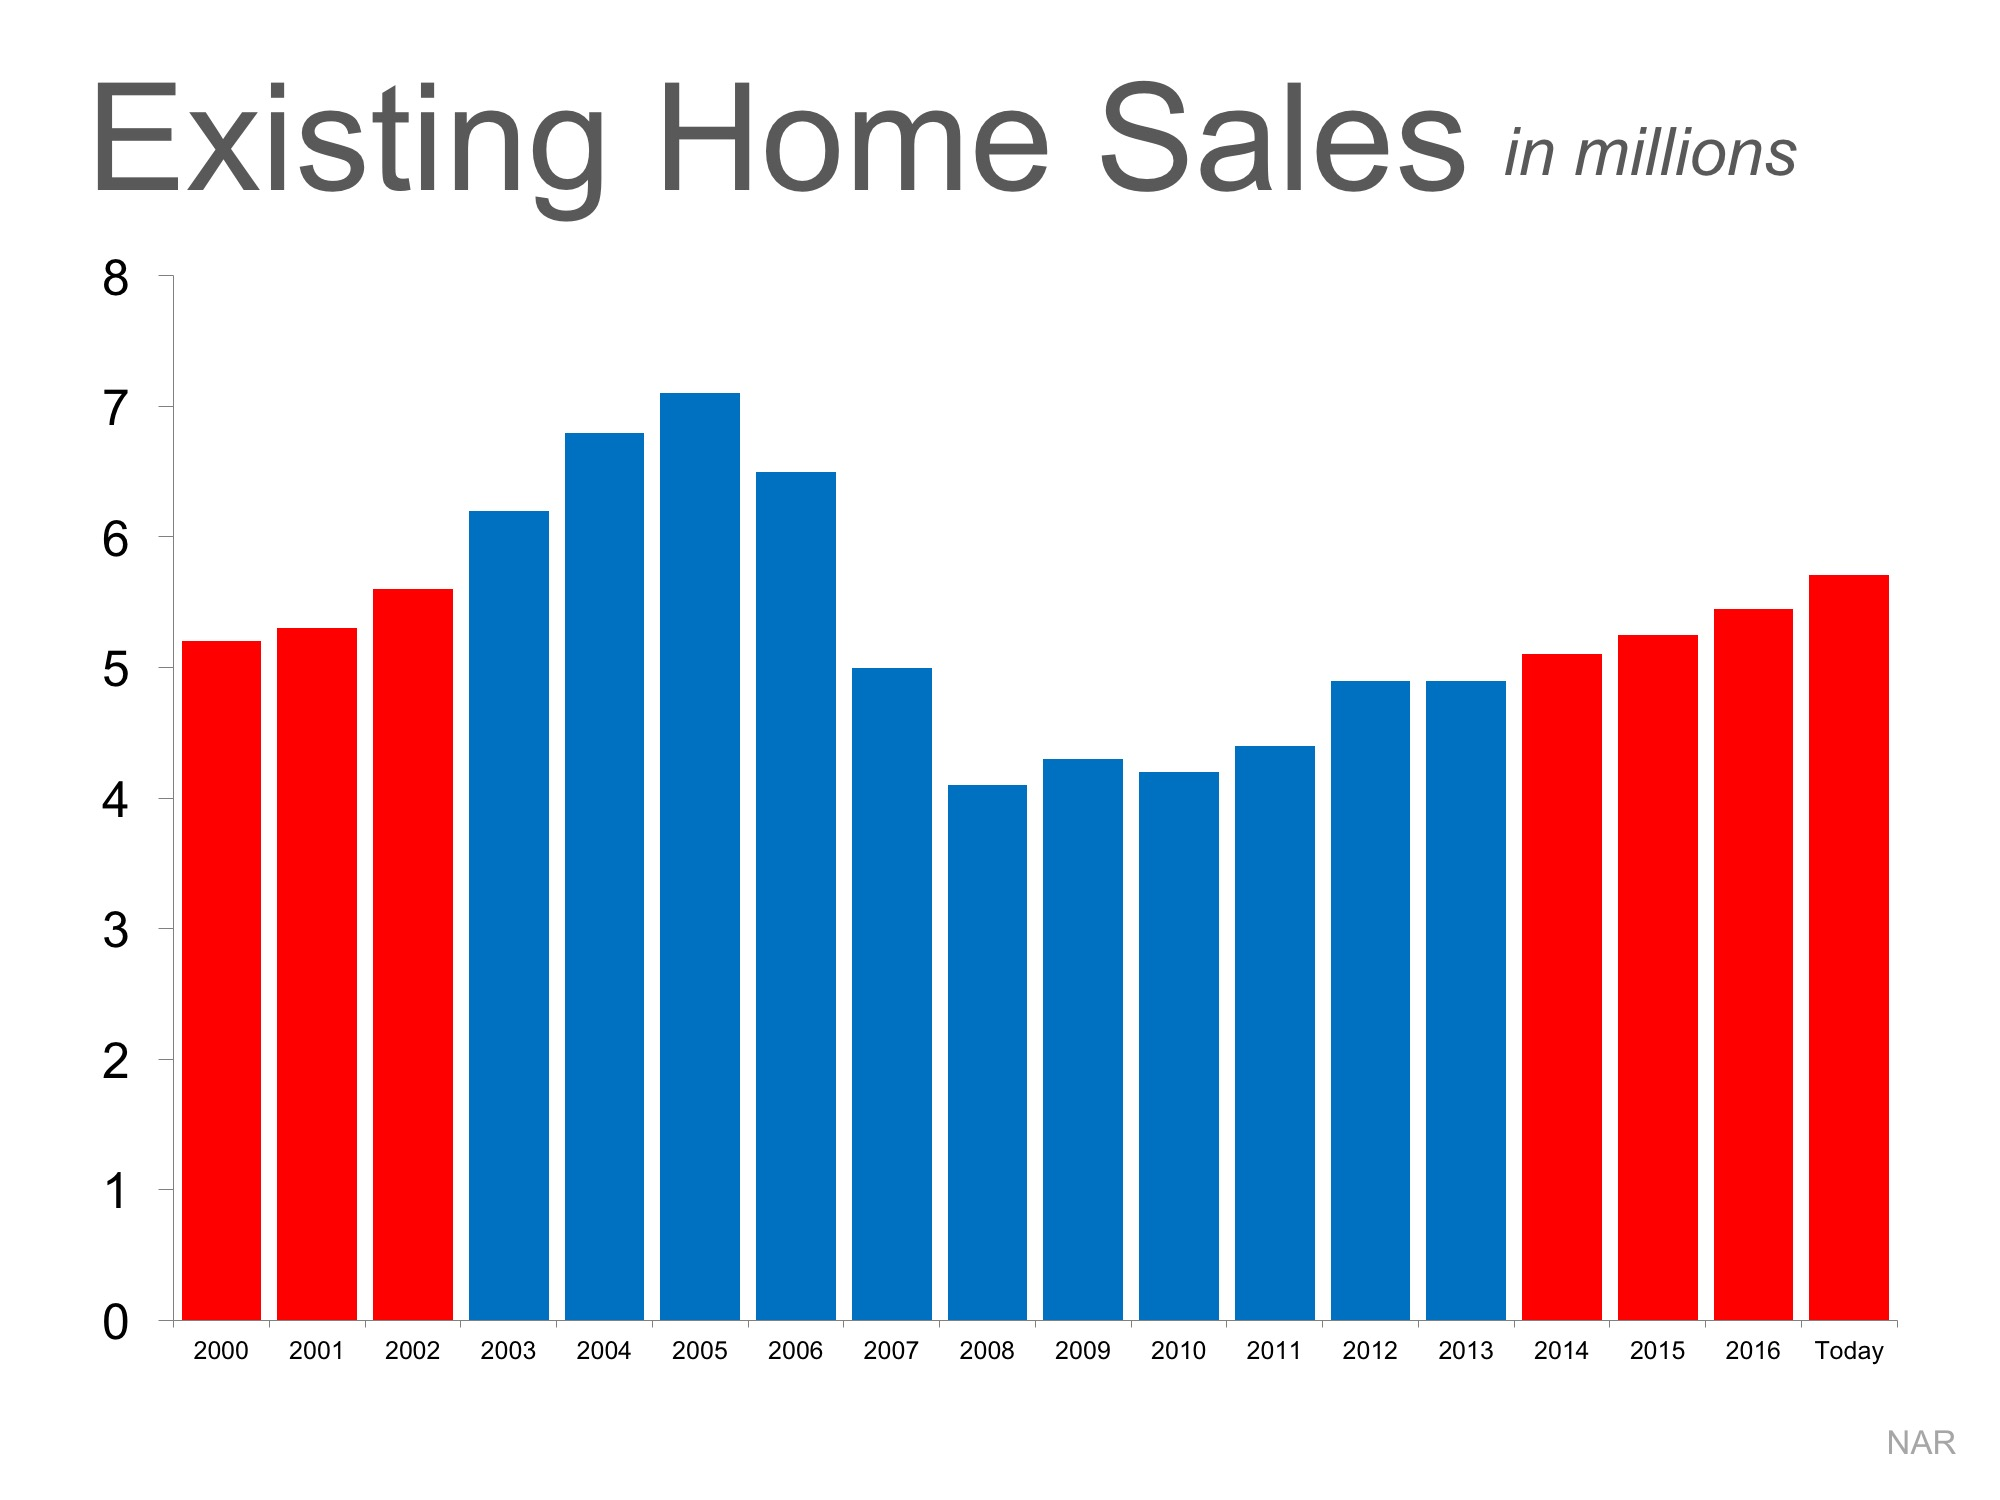 Is the Current Pace of Home Sales Maintainable? | Simplifying The Market